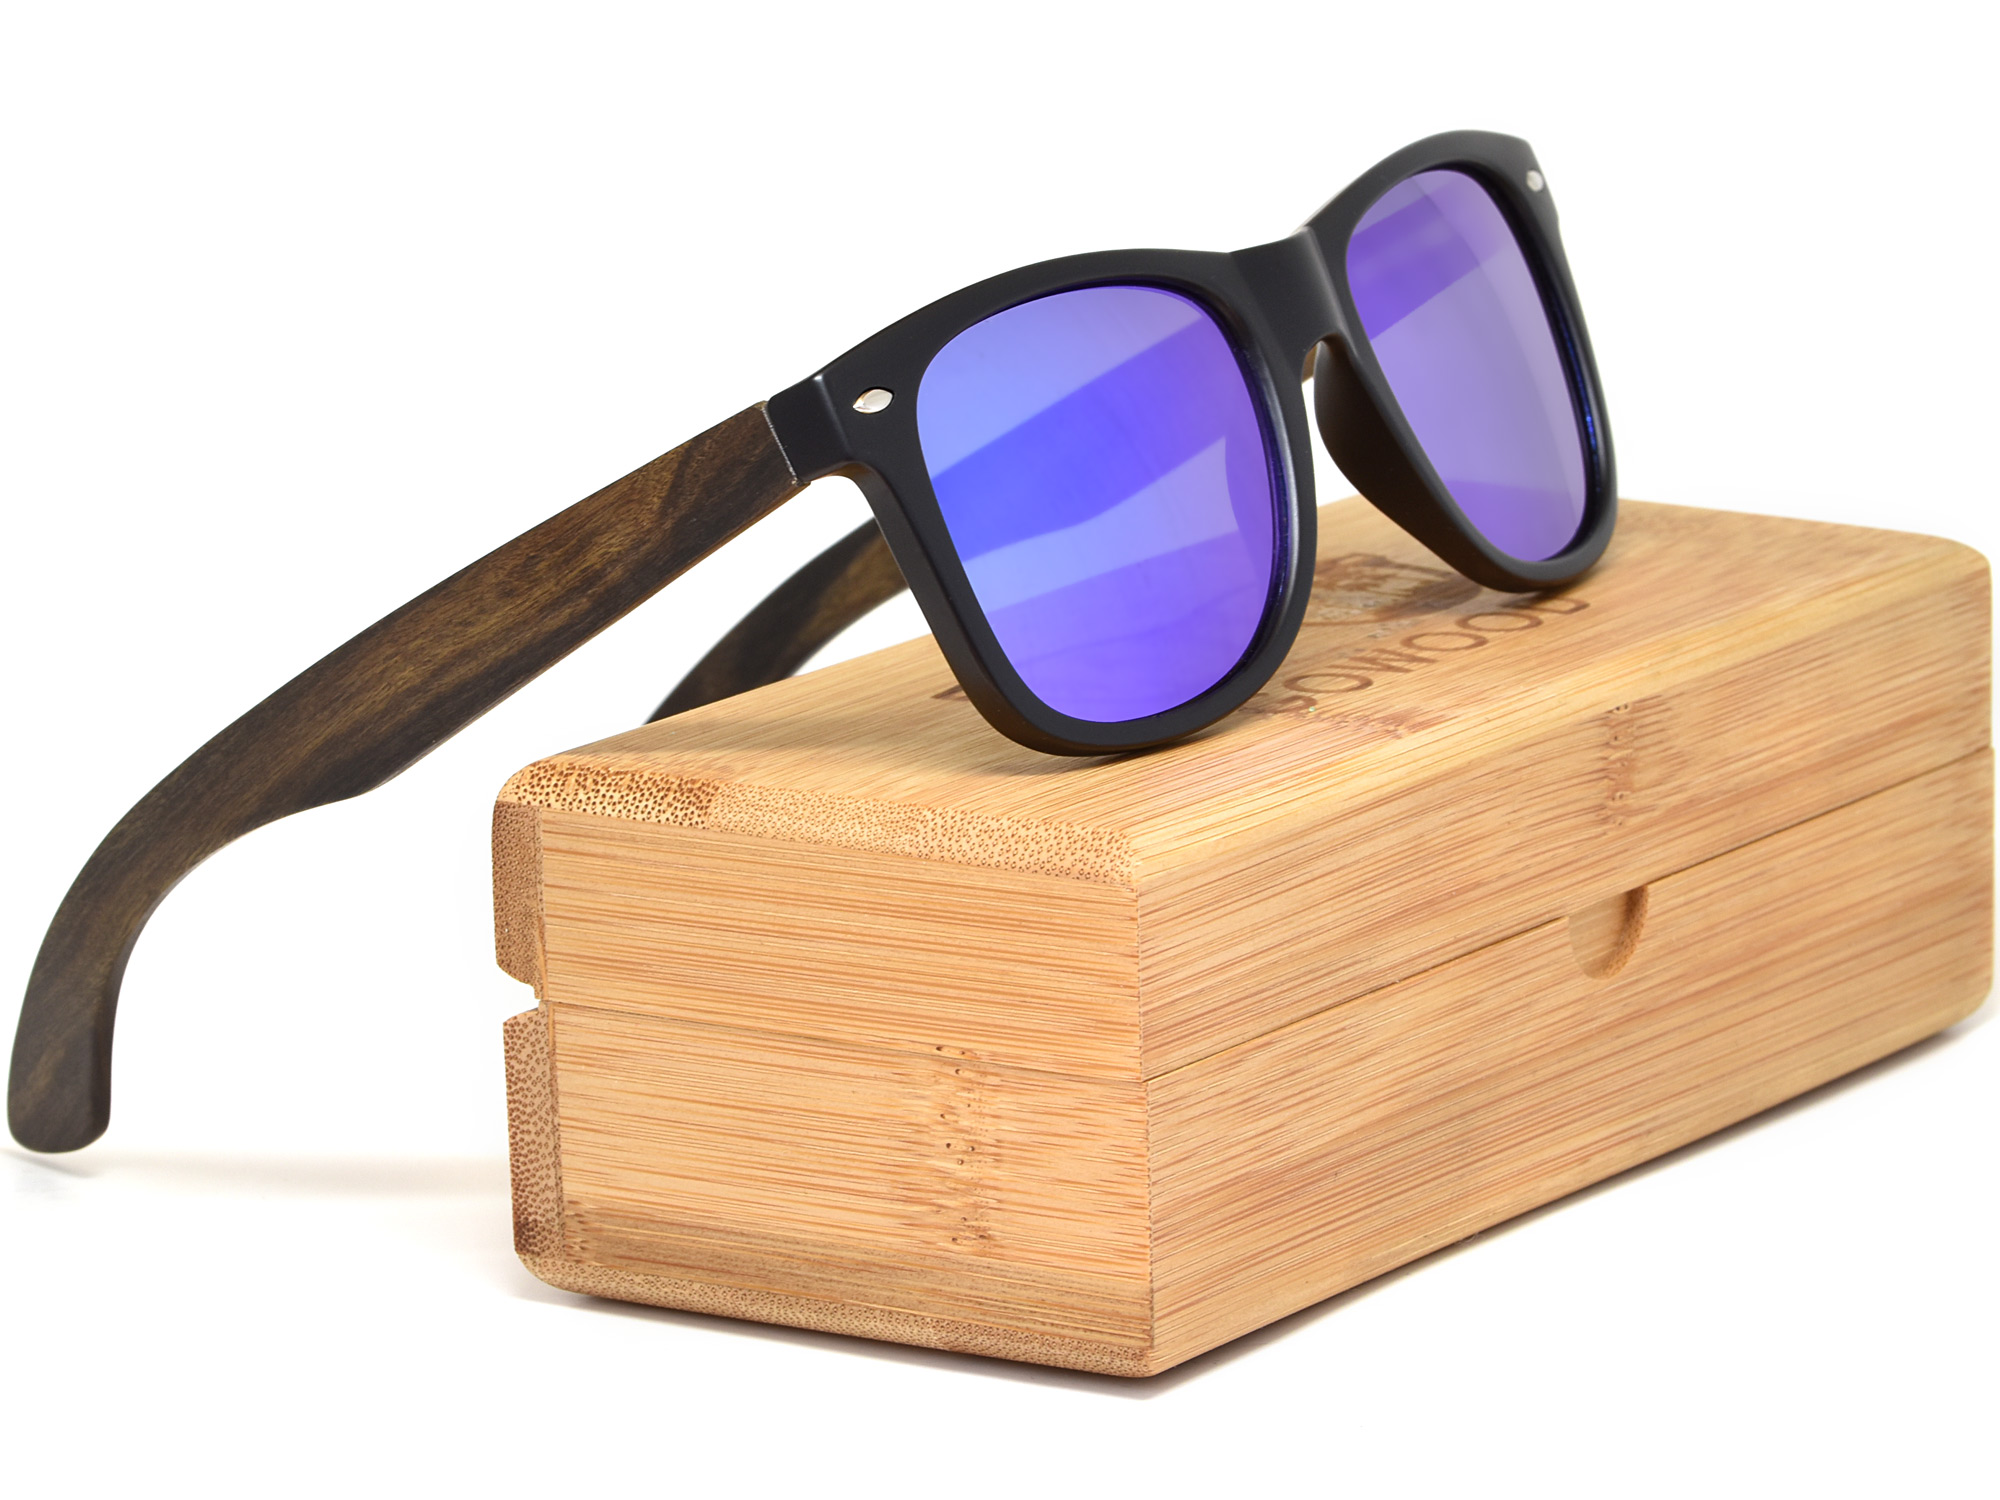 Ebony wood sunglasses with blue mirrored lenses model set